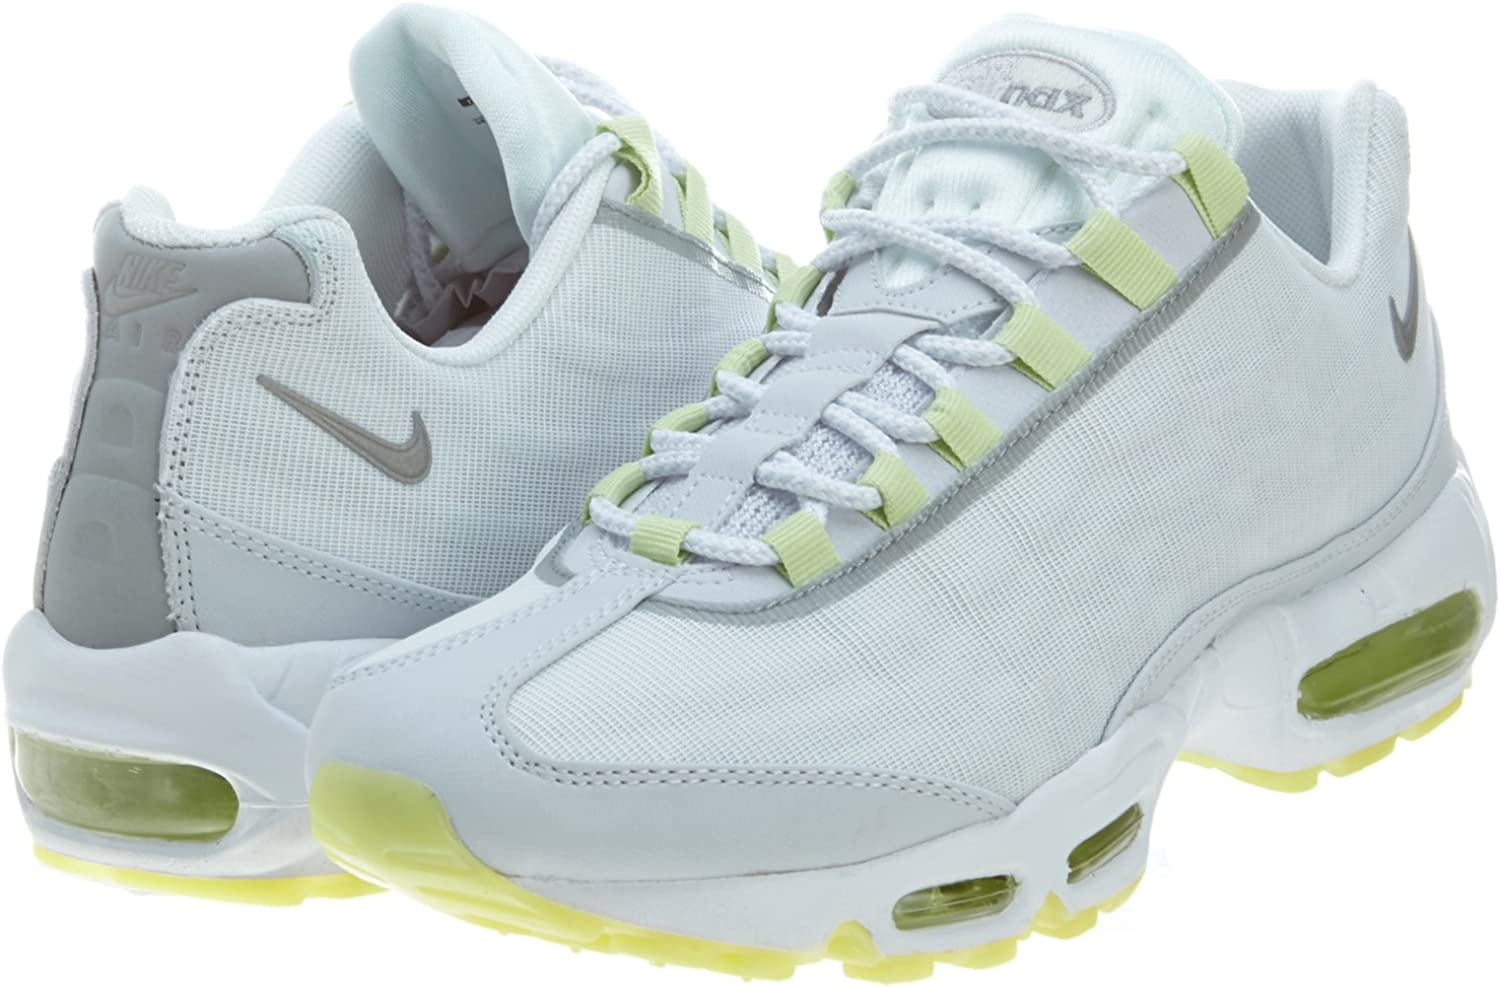 Nike Air Max 95 PRM Tape 599425103, Baskets Mode Homme